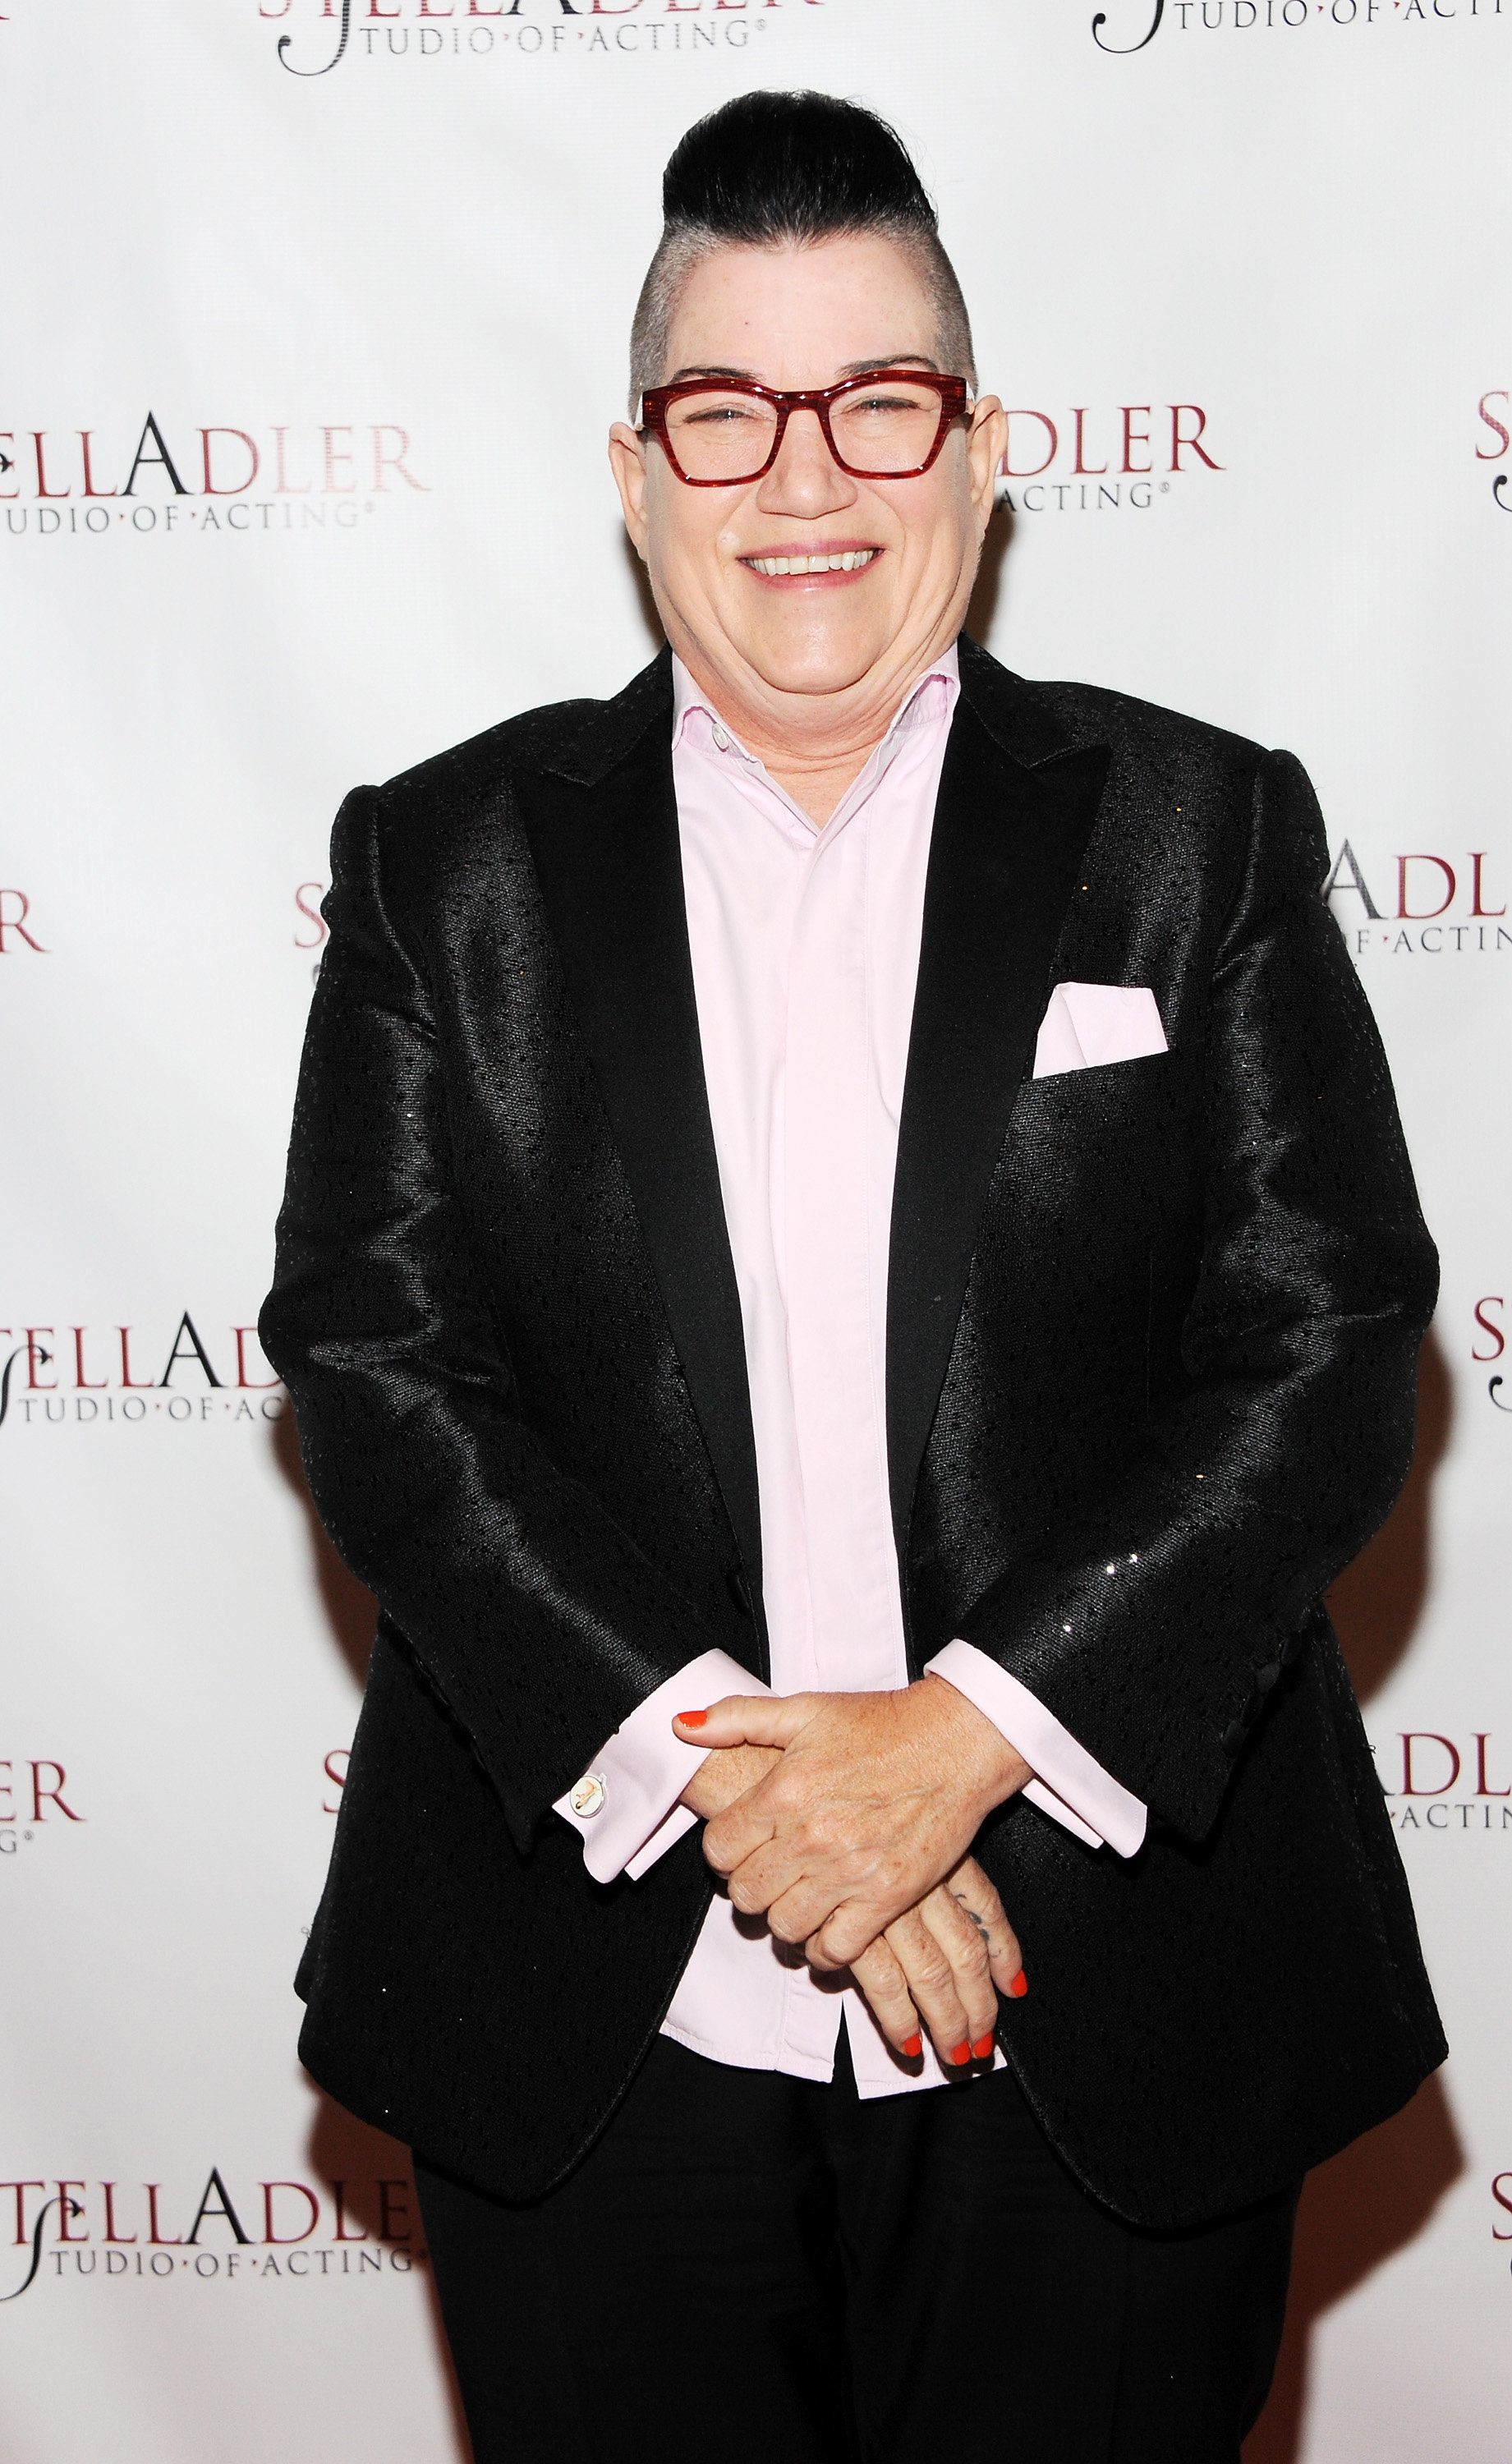 NEW YORK, NY - JUNE 13:  Actress Lea DeLaria attends the 11th Annual Stella By Starlight Gala at Prince George Ballroom on June 13, 2016 in New York City.  (Photo by Desiree Navarro/WireImage)